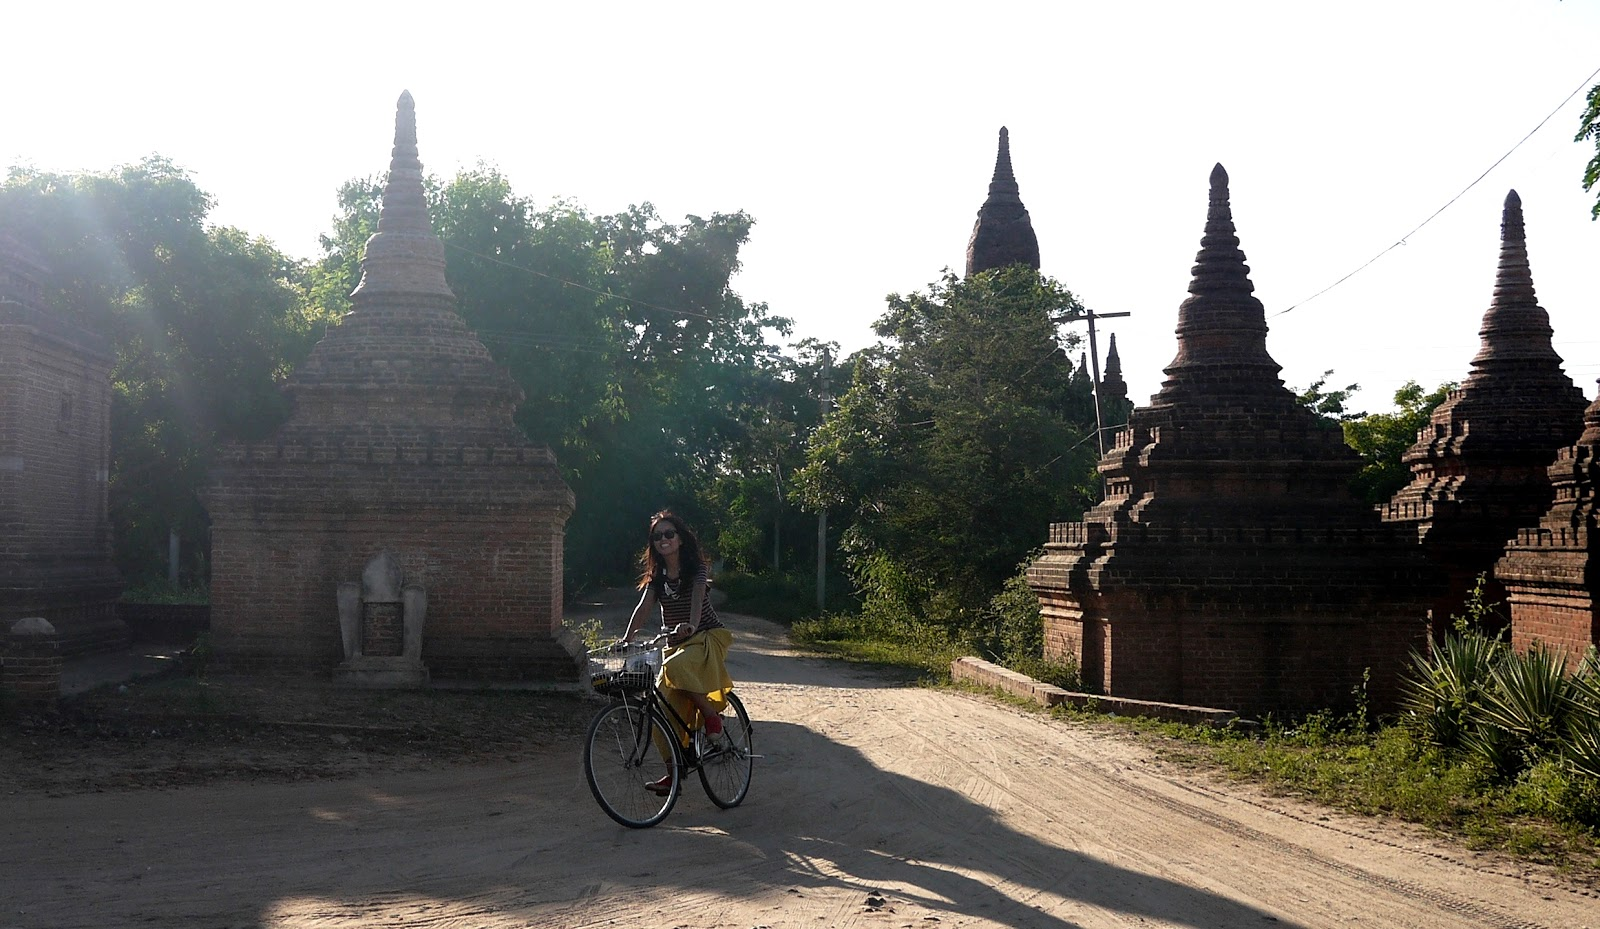 Cycling around temples in Bagan